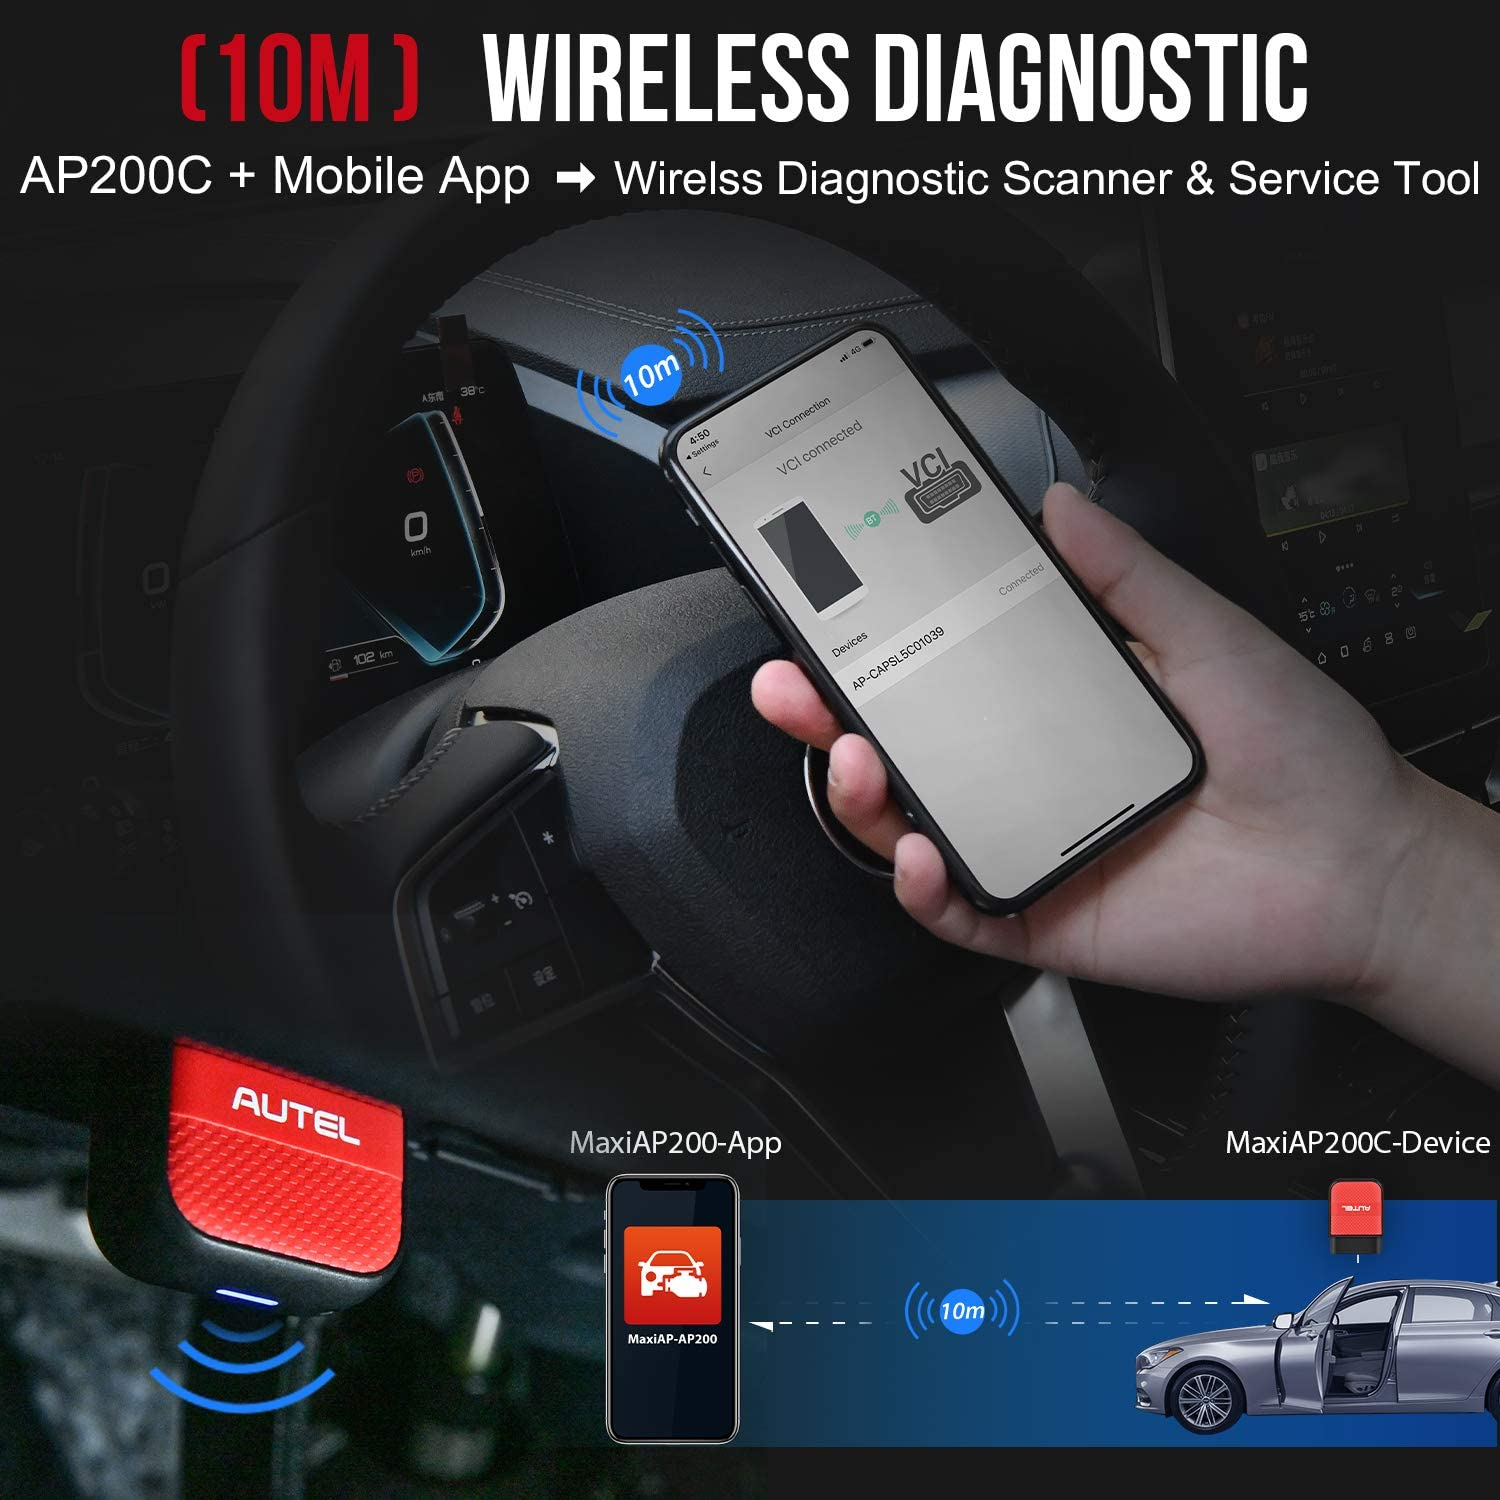 BMS Airbag Reset SAS Throttle Optional OBD2 Scanner for iOS /& Android EPB DPF Autel MaxiAP AP200C Wireless OBDII Scan Tool with ABS SRS Diagnostics ABS Bleed Car Service Tool with Oil Reset